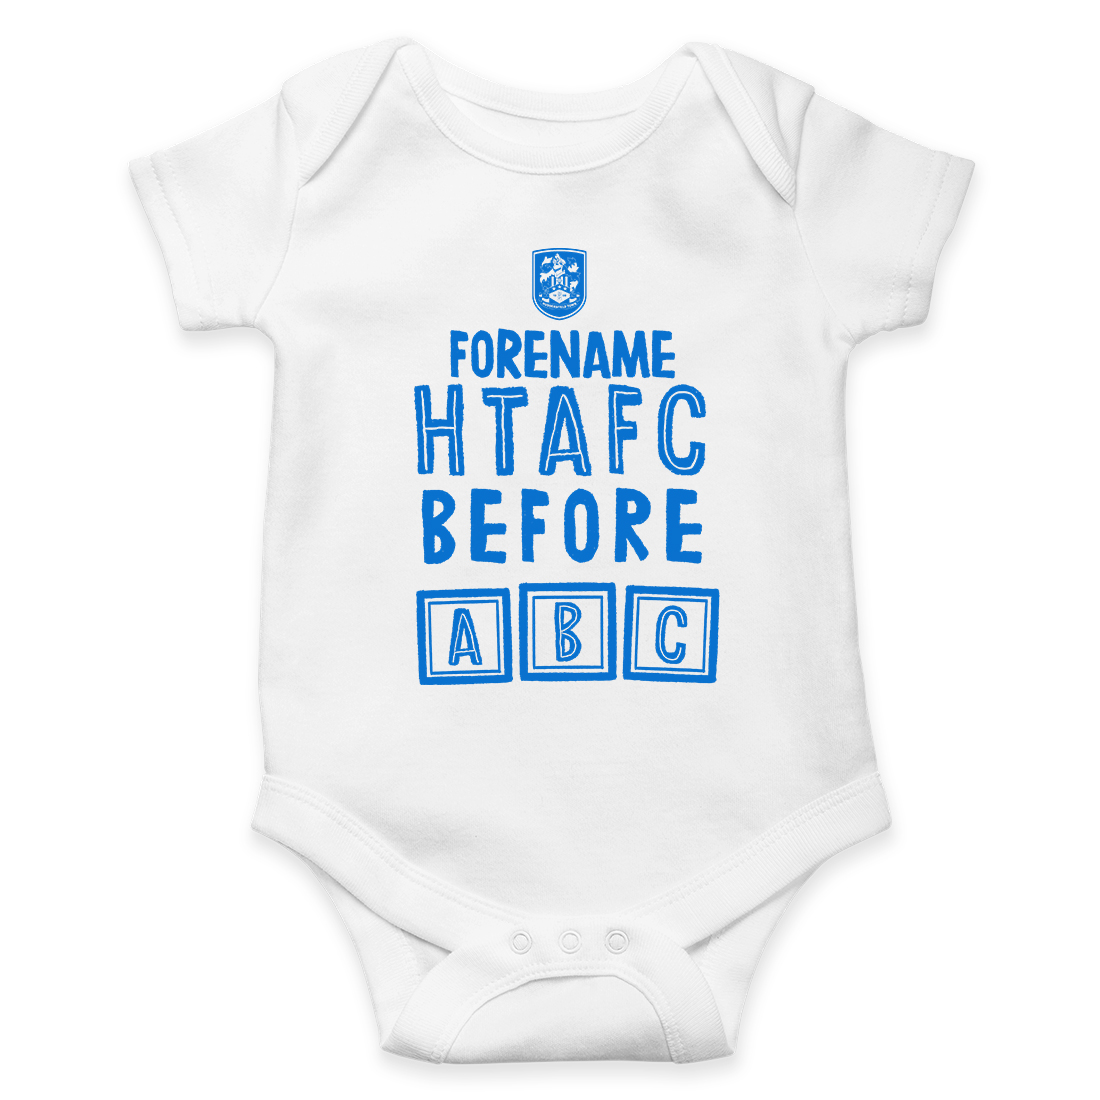 Huddersfield Town AFC Before ABC Baby Bodysuit